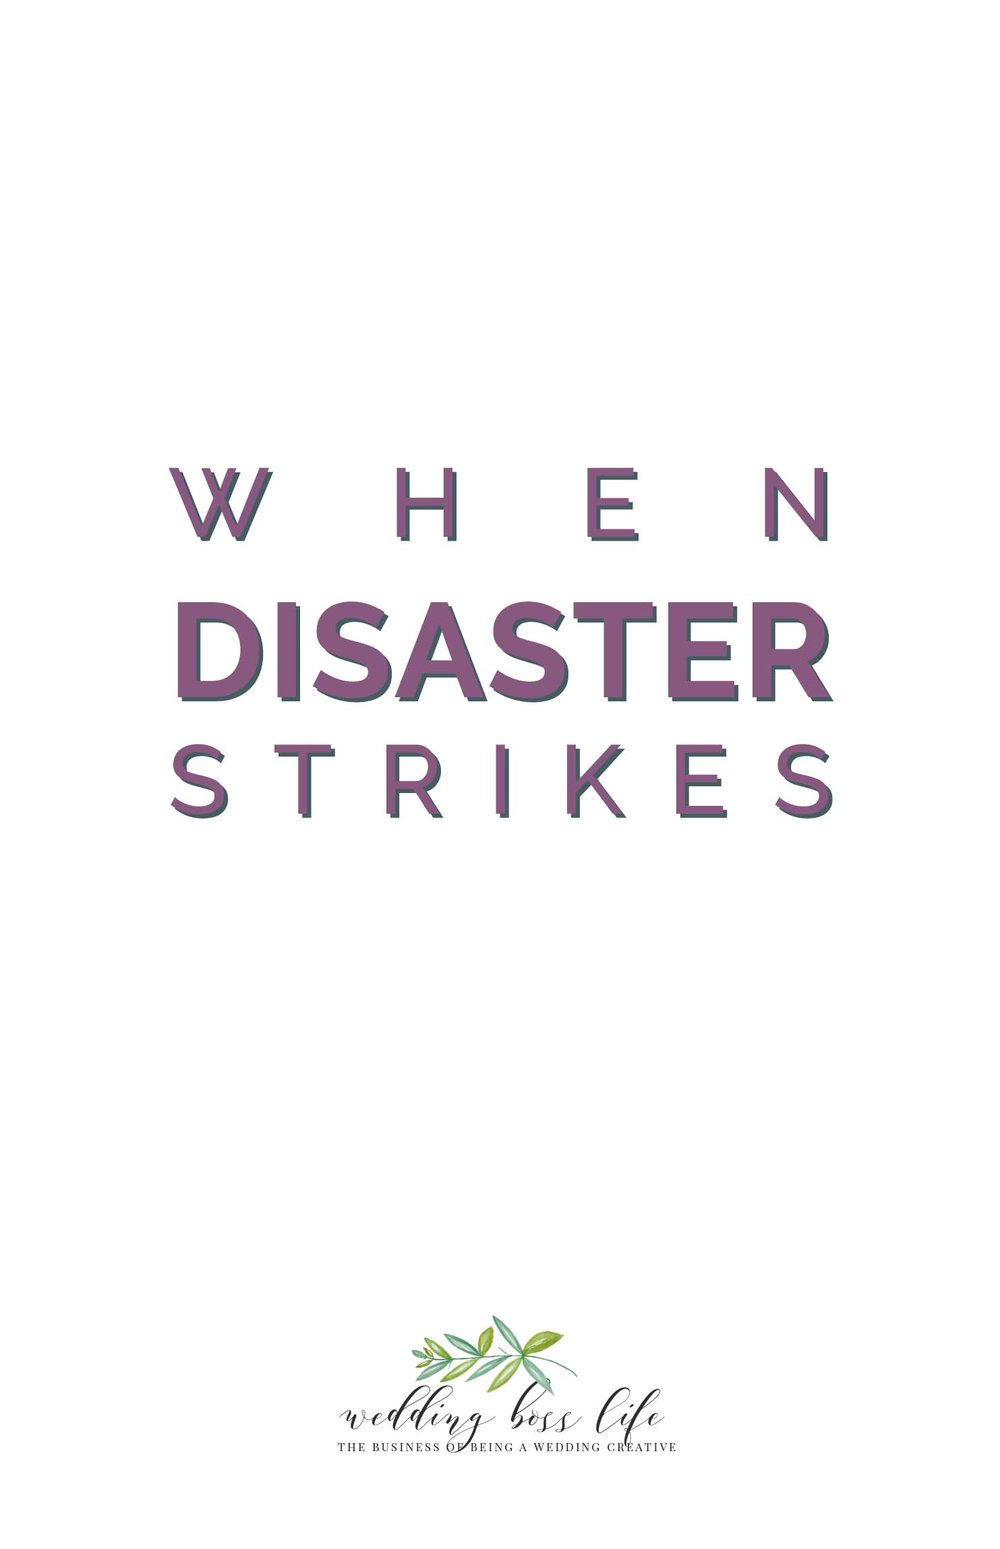 When Disaster Strikes - Is Your Business Prepared